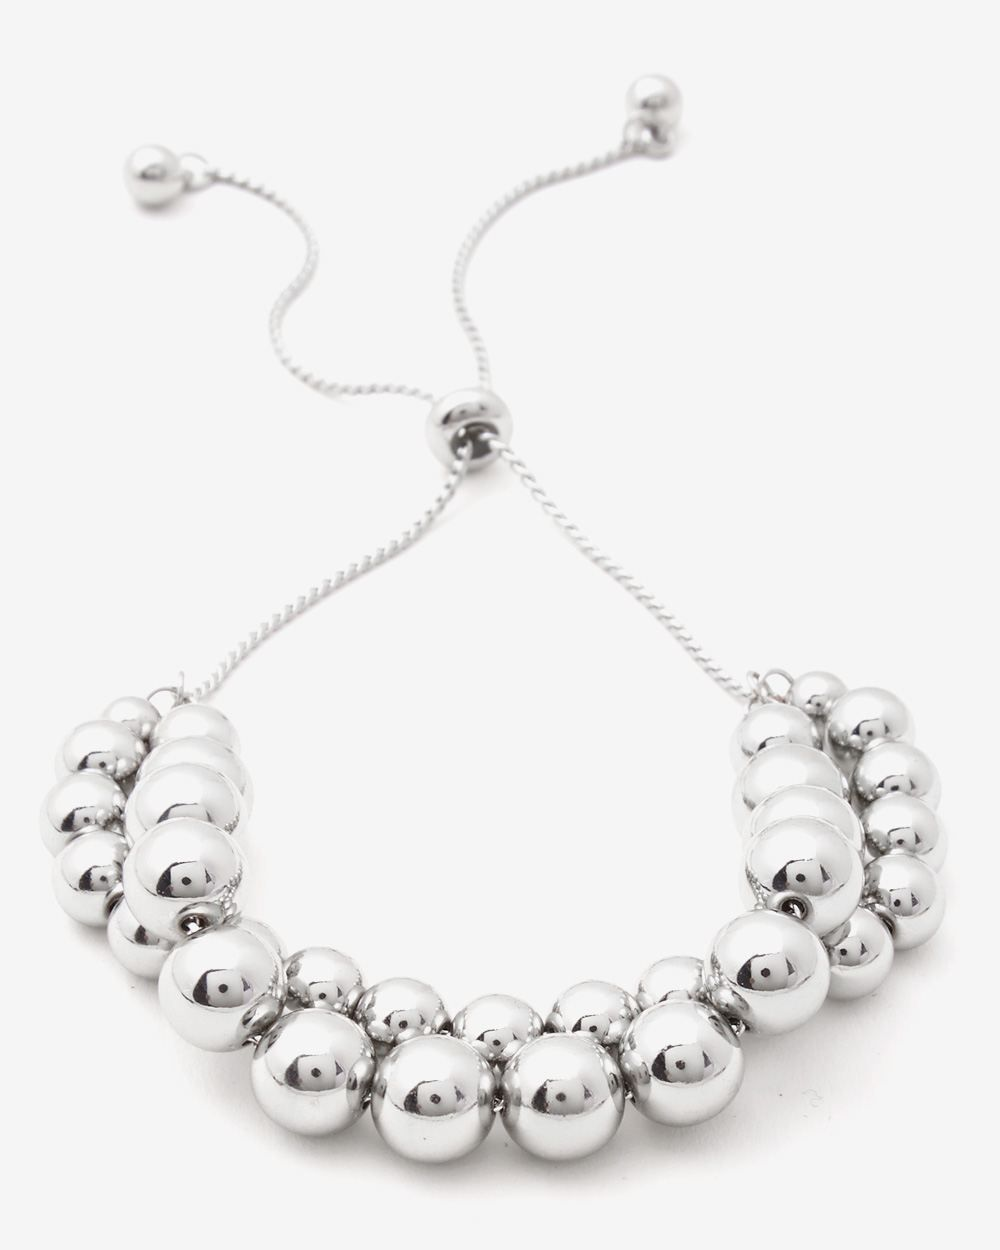 Get yourself this jewelry to always have a plus size bracelet that